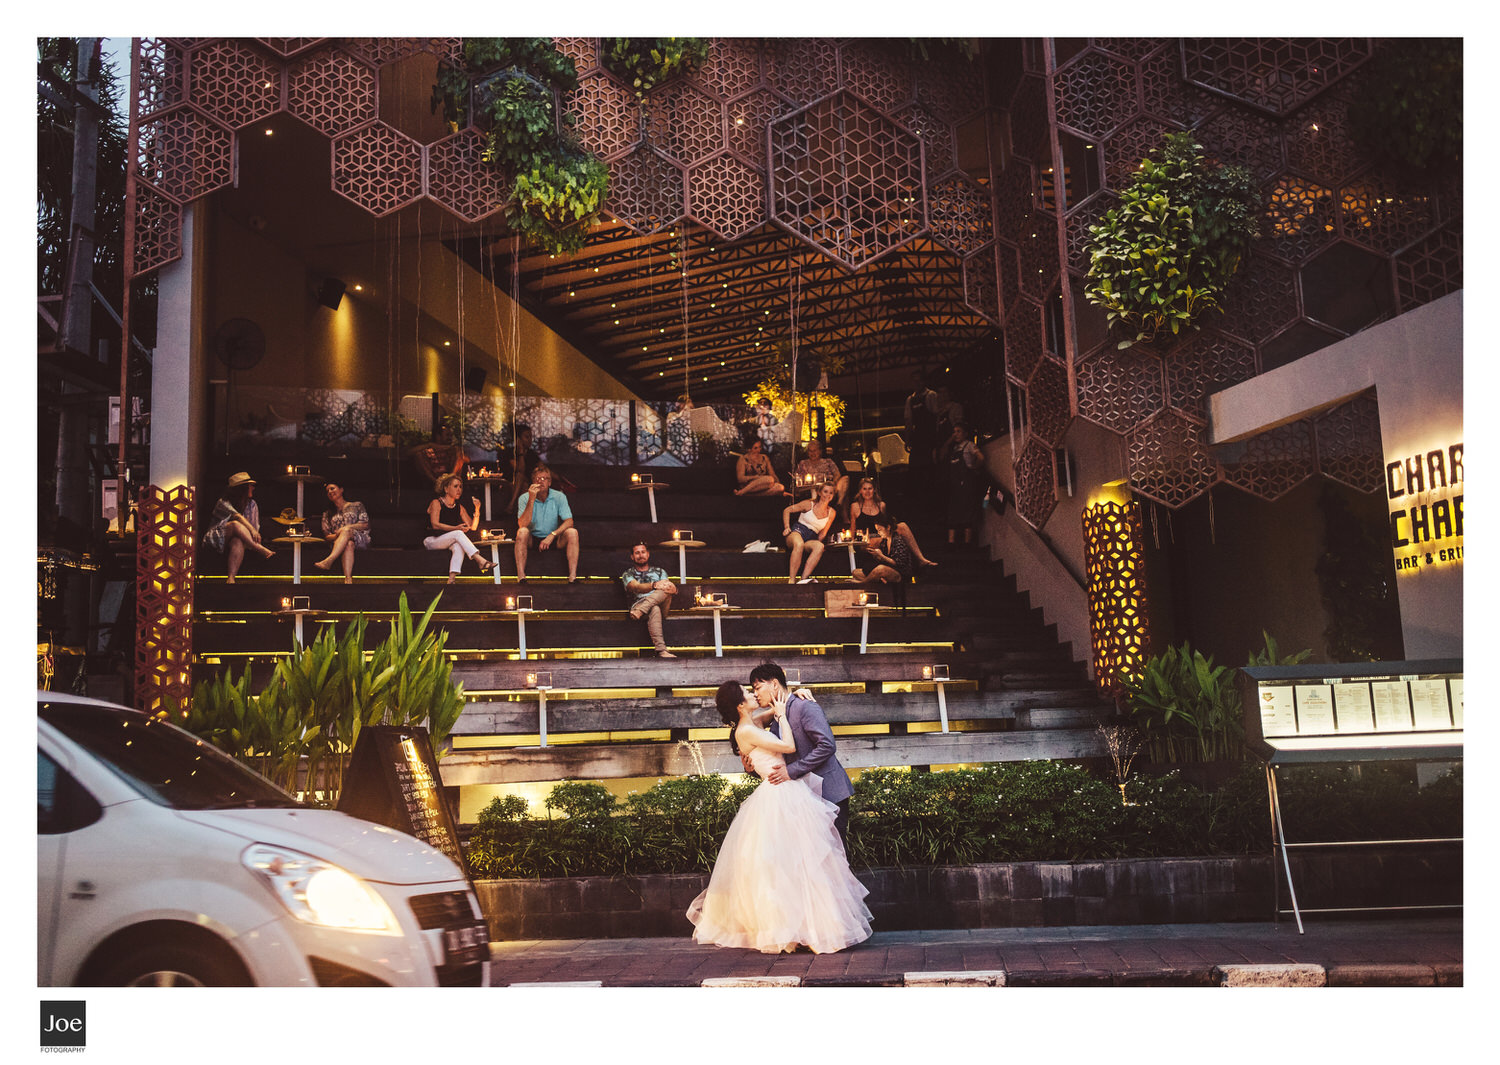 joe-fotography-40-bali-char-char-bar-and-grill-pre-wedding-amelie.jpg